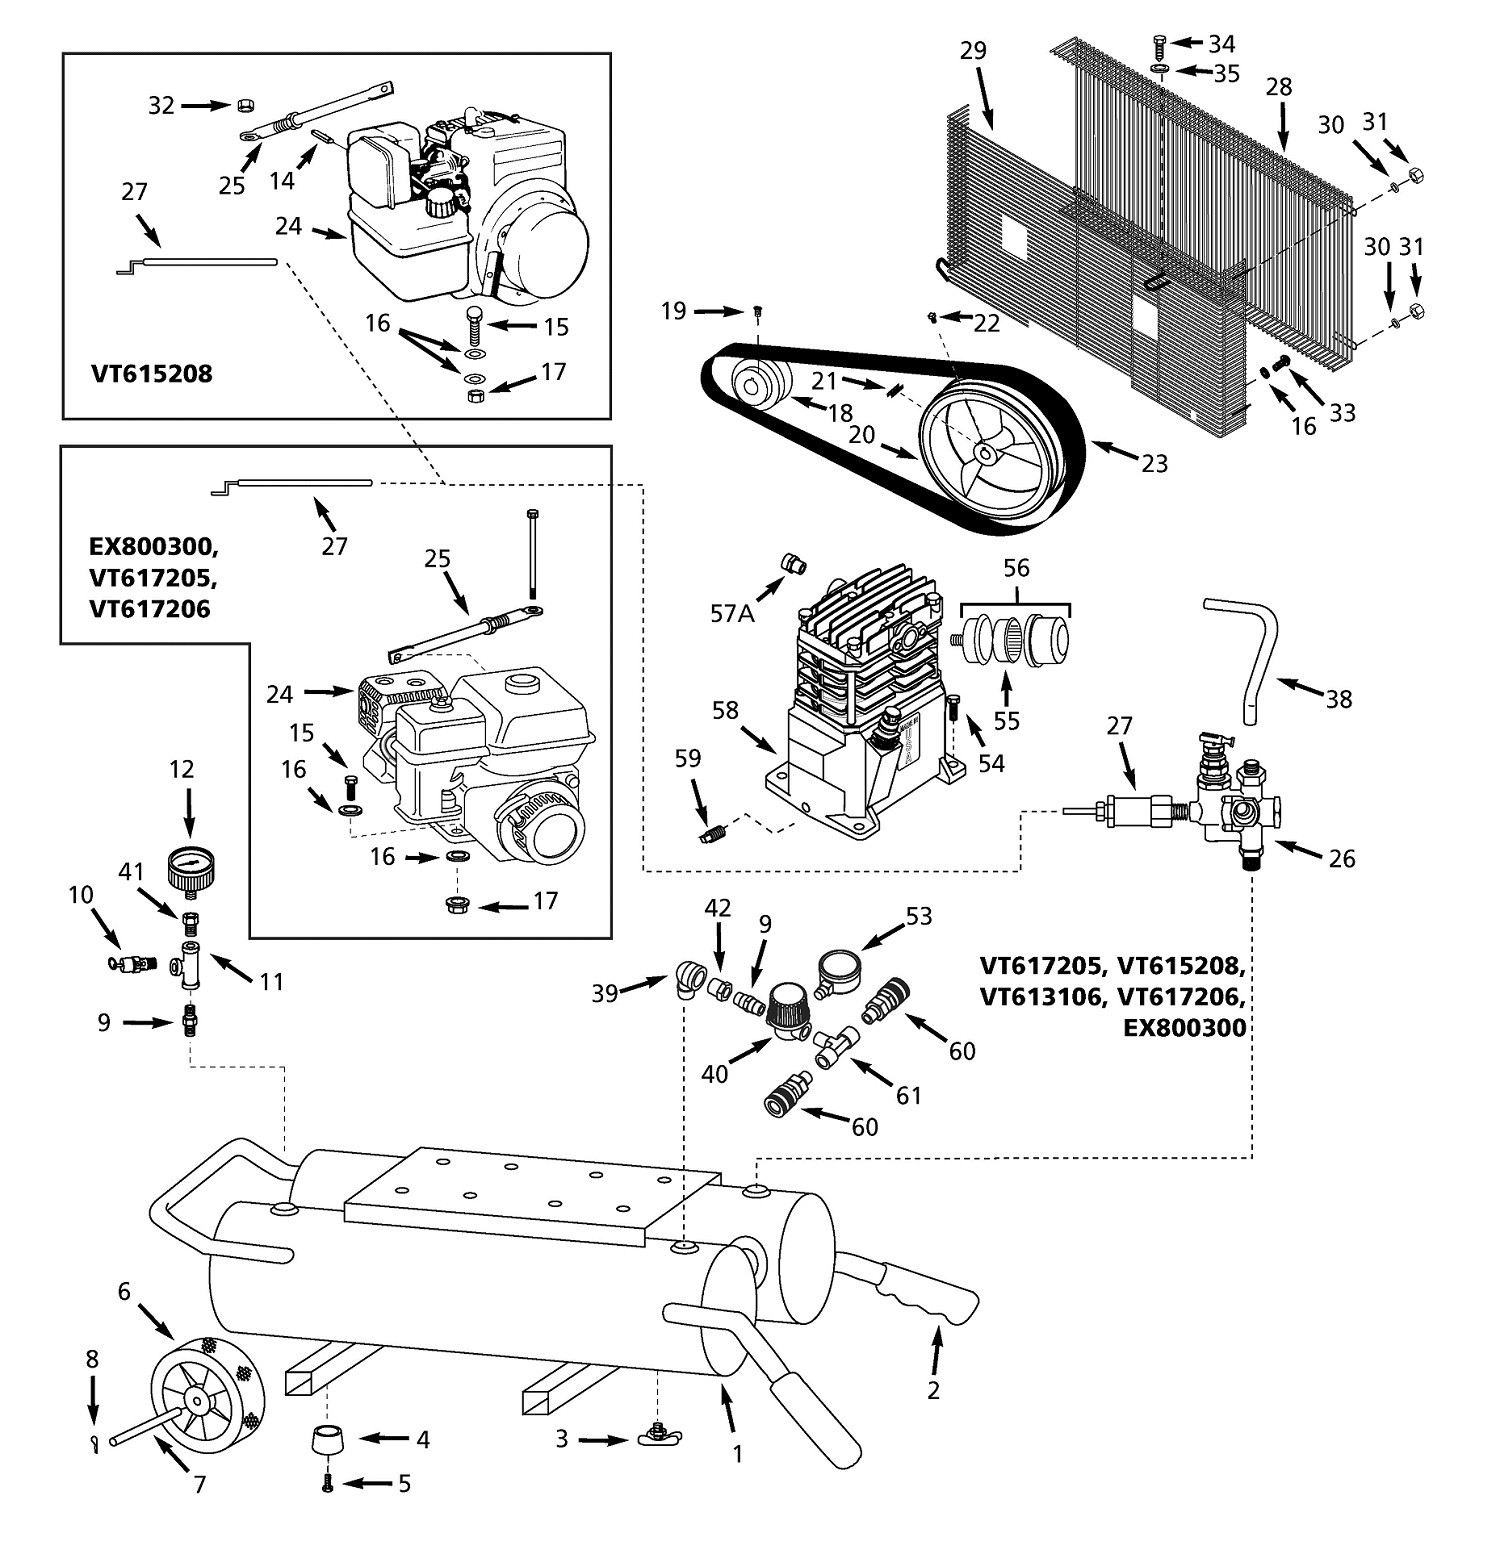 Campbell Hausfeld Air Compressor Parts Diagram Campbell Hausfeld Air Pressor Parts Of Campbell Hausfeld Air Compressor Parts Diagram